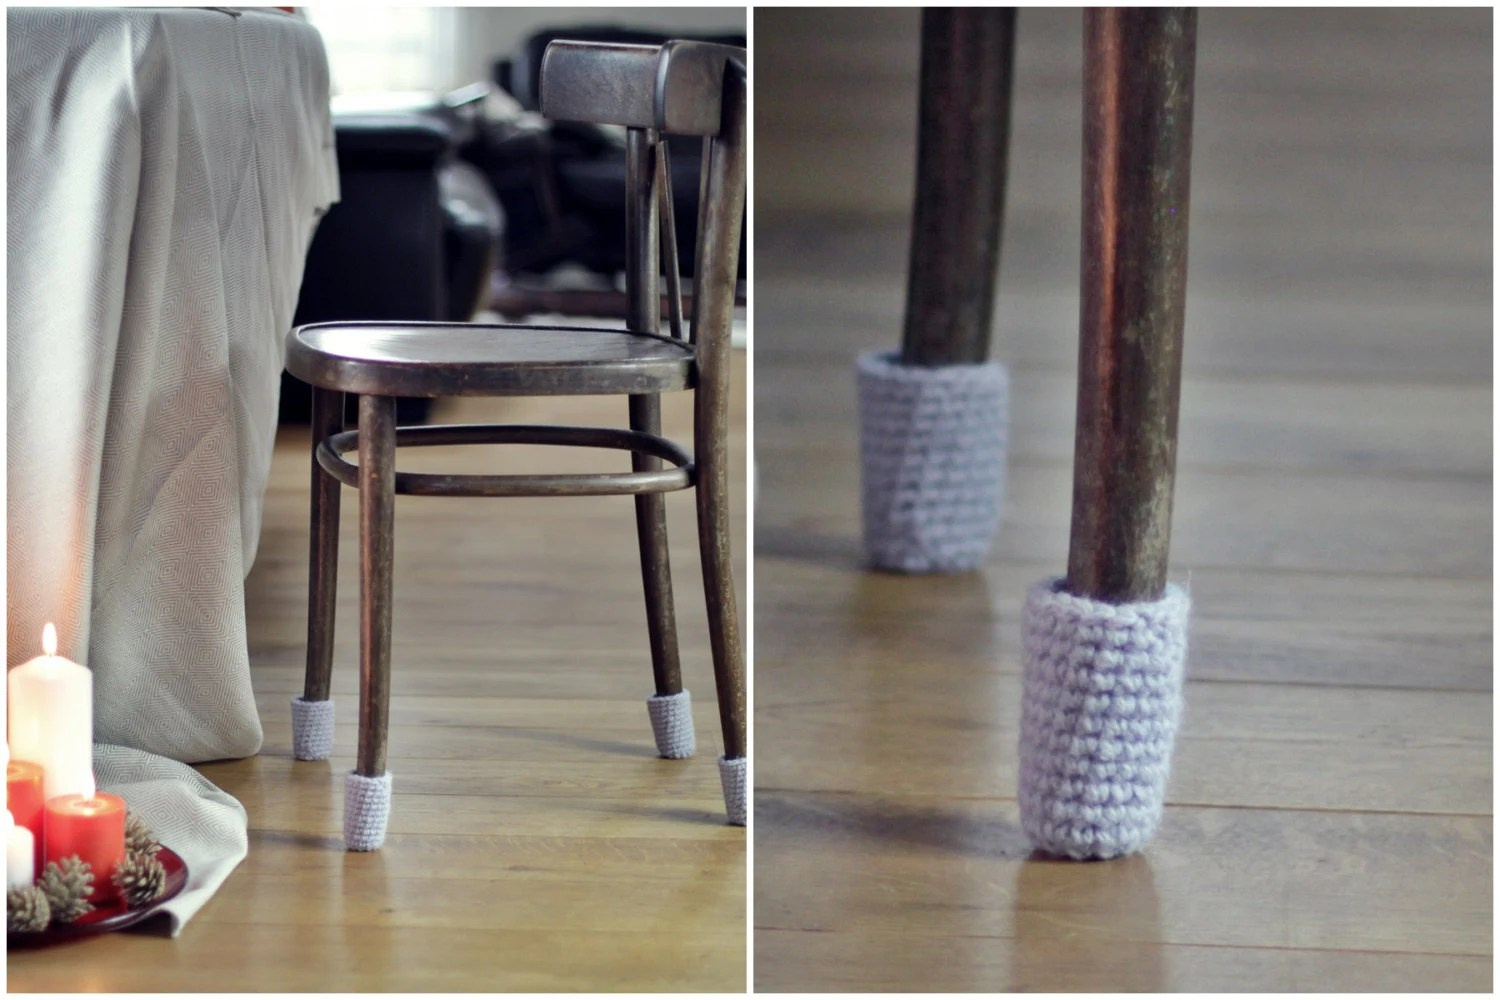 Floor Protectors For Chairs Chair Legs Covers Socks Floor Protector Chair Leg Socks